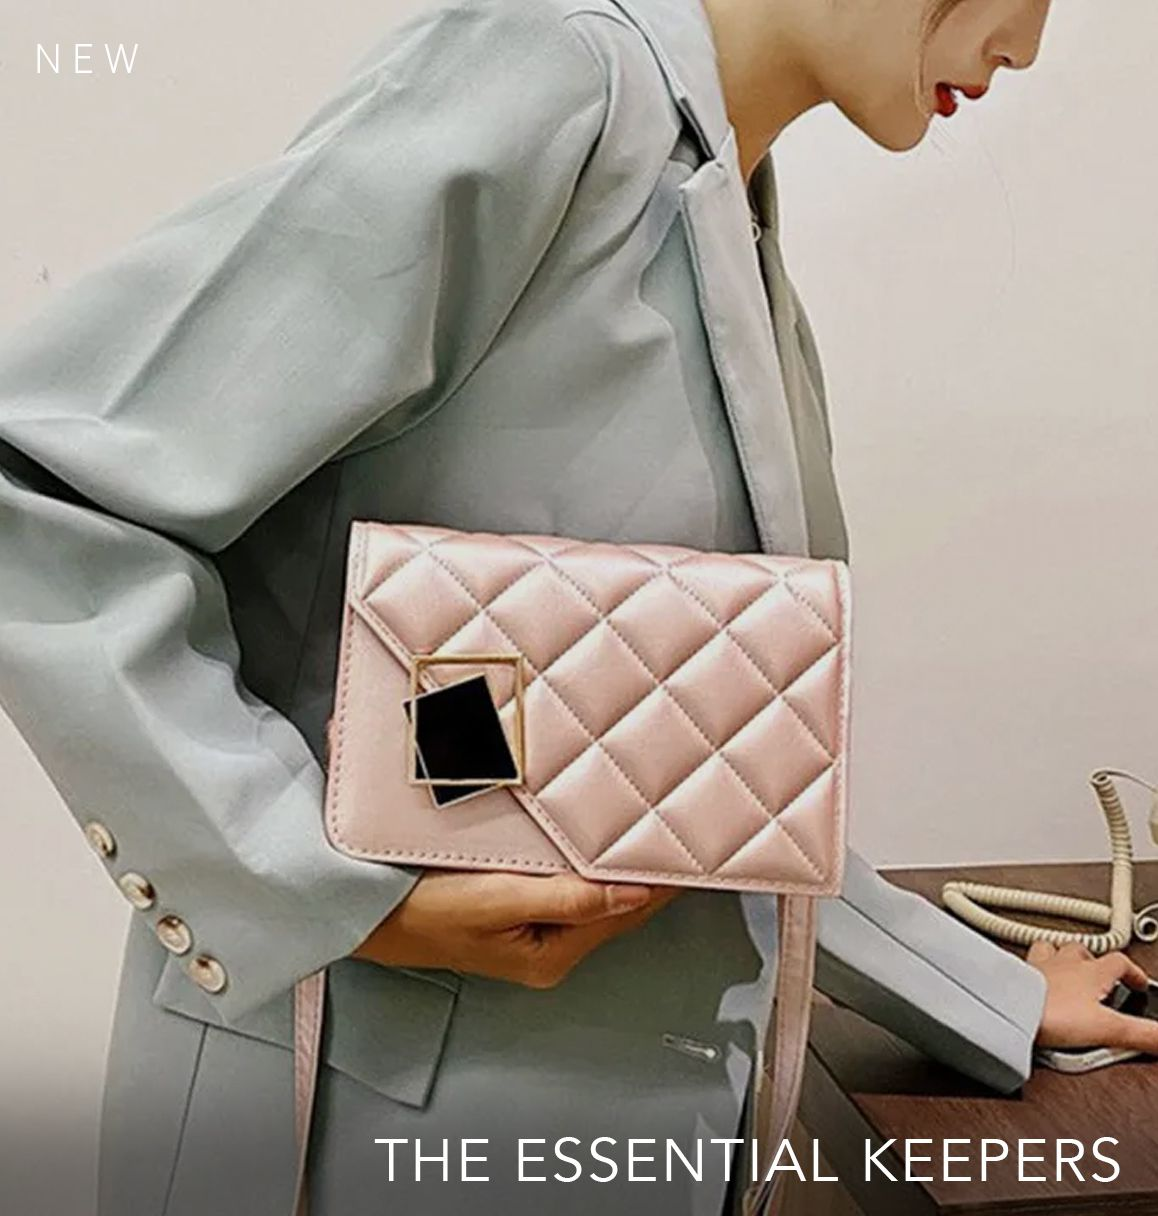 The Essential Keepers